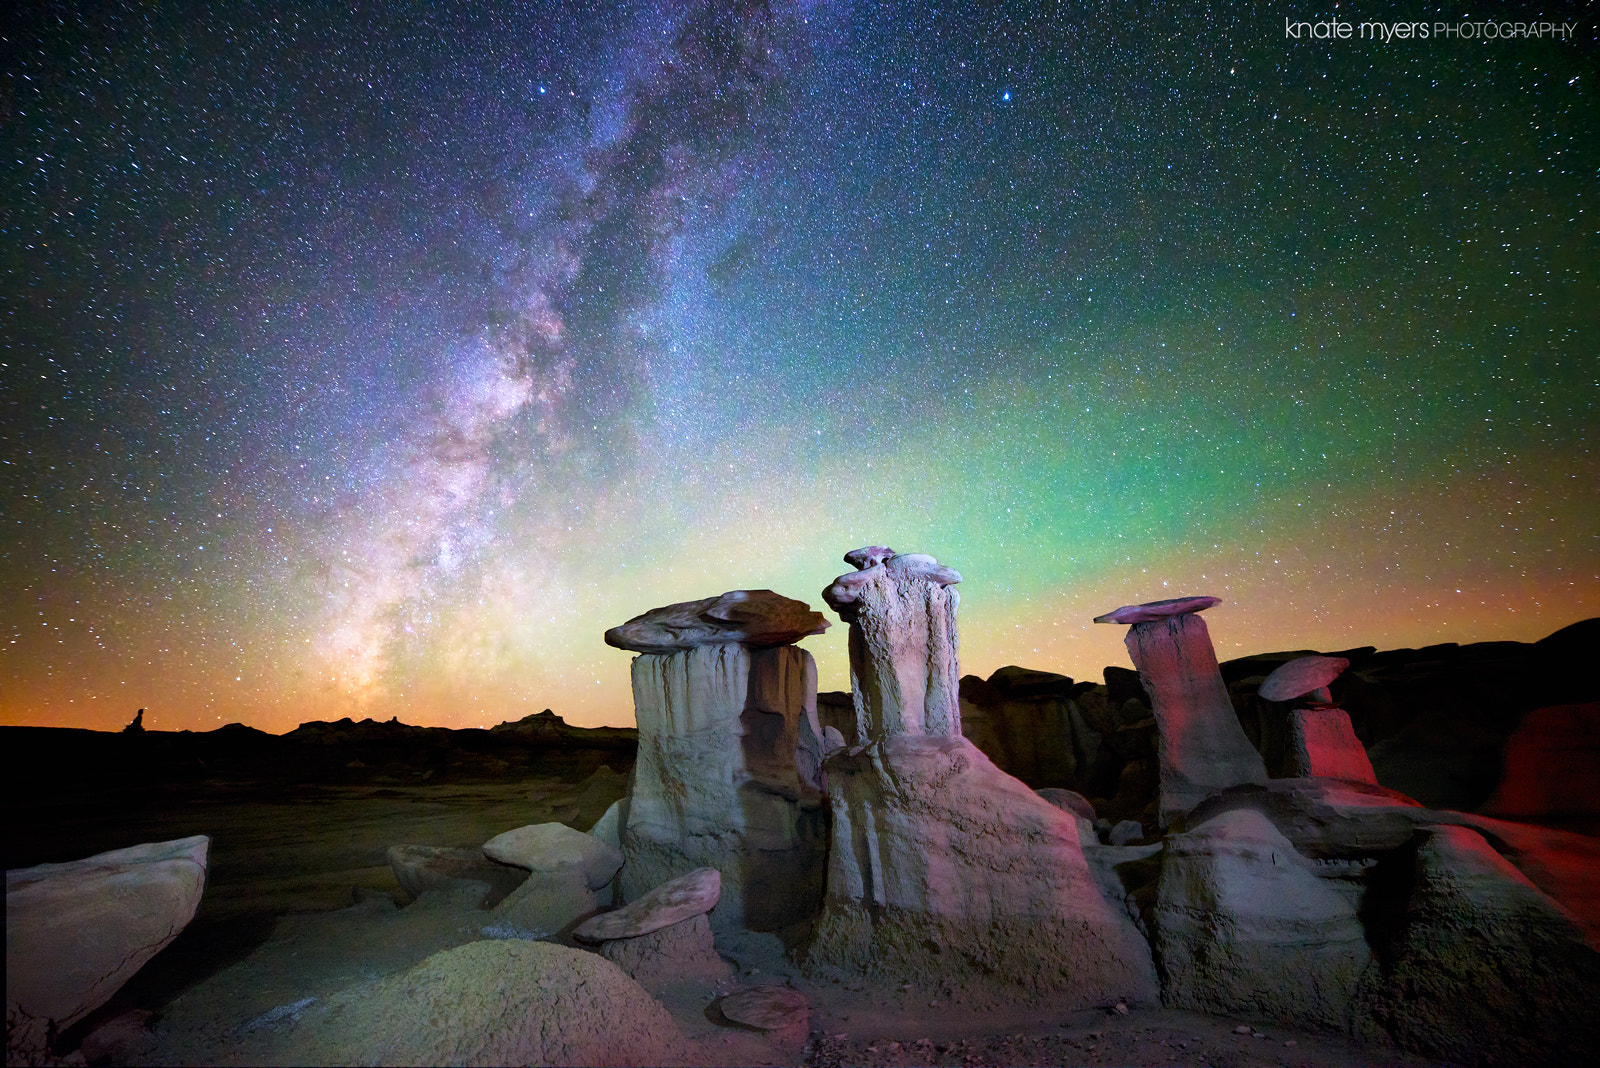 Photograph Otherworldly by Knate Myers on 500px